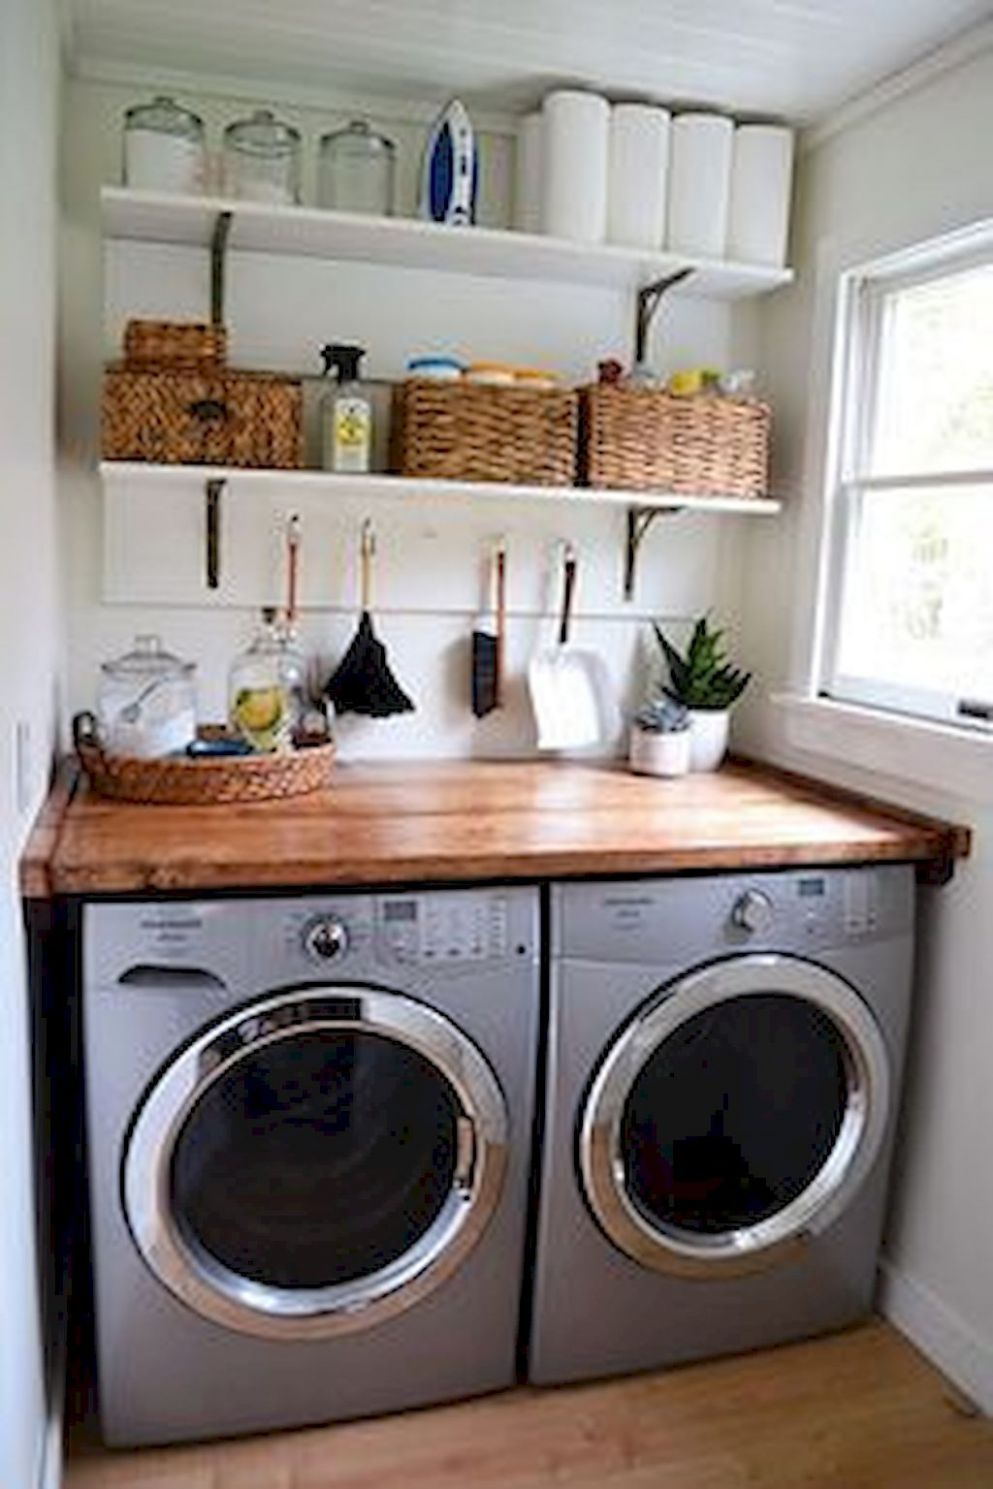 12 First Apartment Laundry Room Decor Ideas Remodel | Laundry room ...